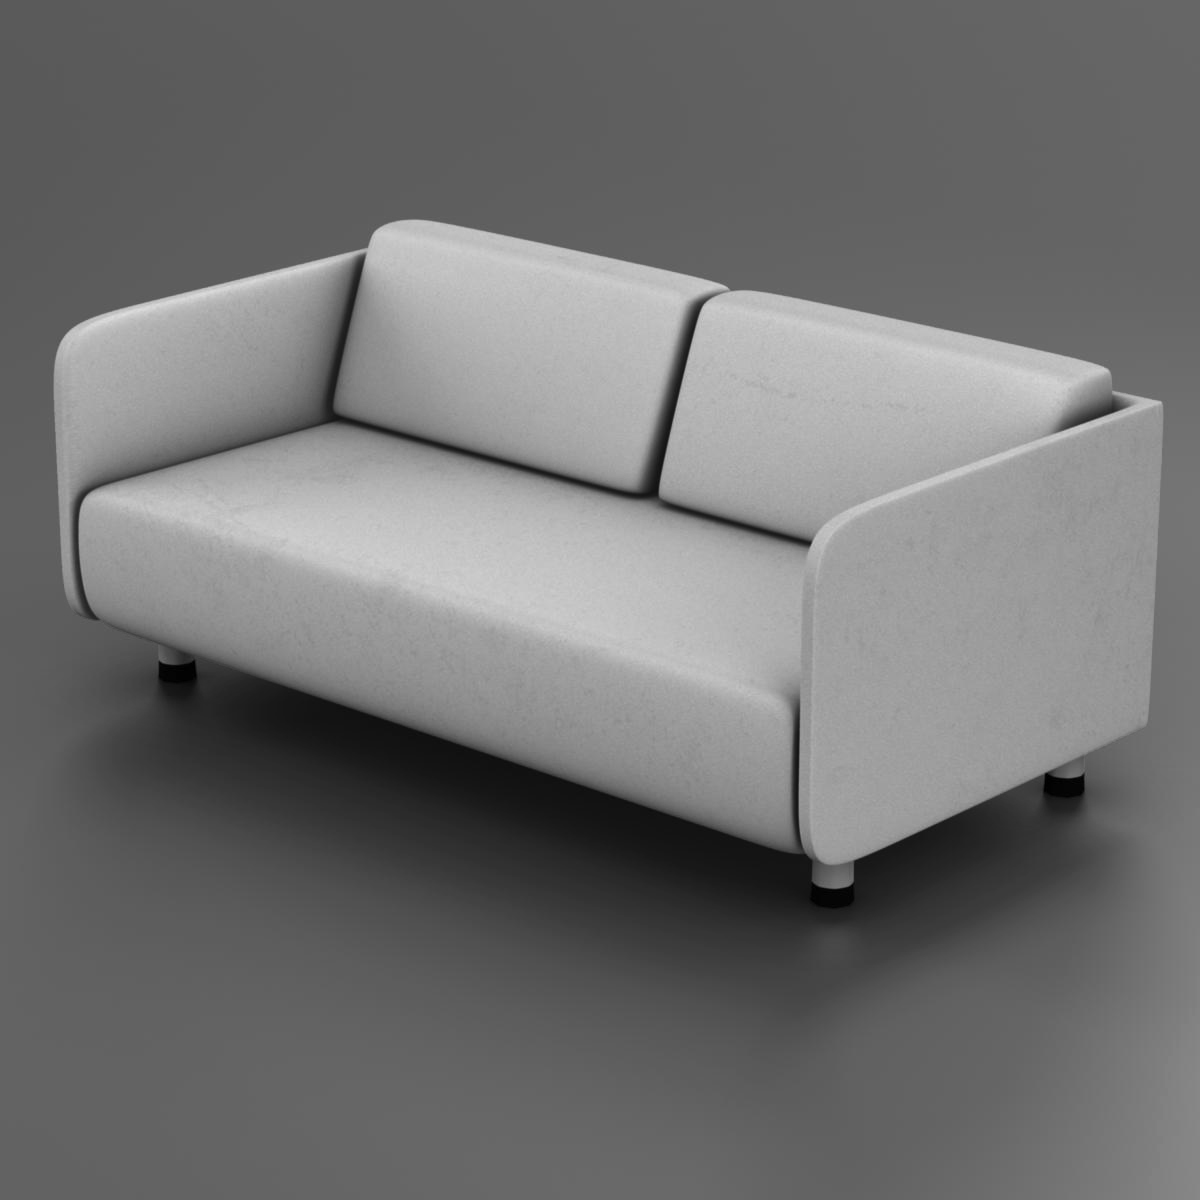 white couch 3d model 3ds max fbx c4d ma mb obj 162950